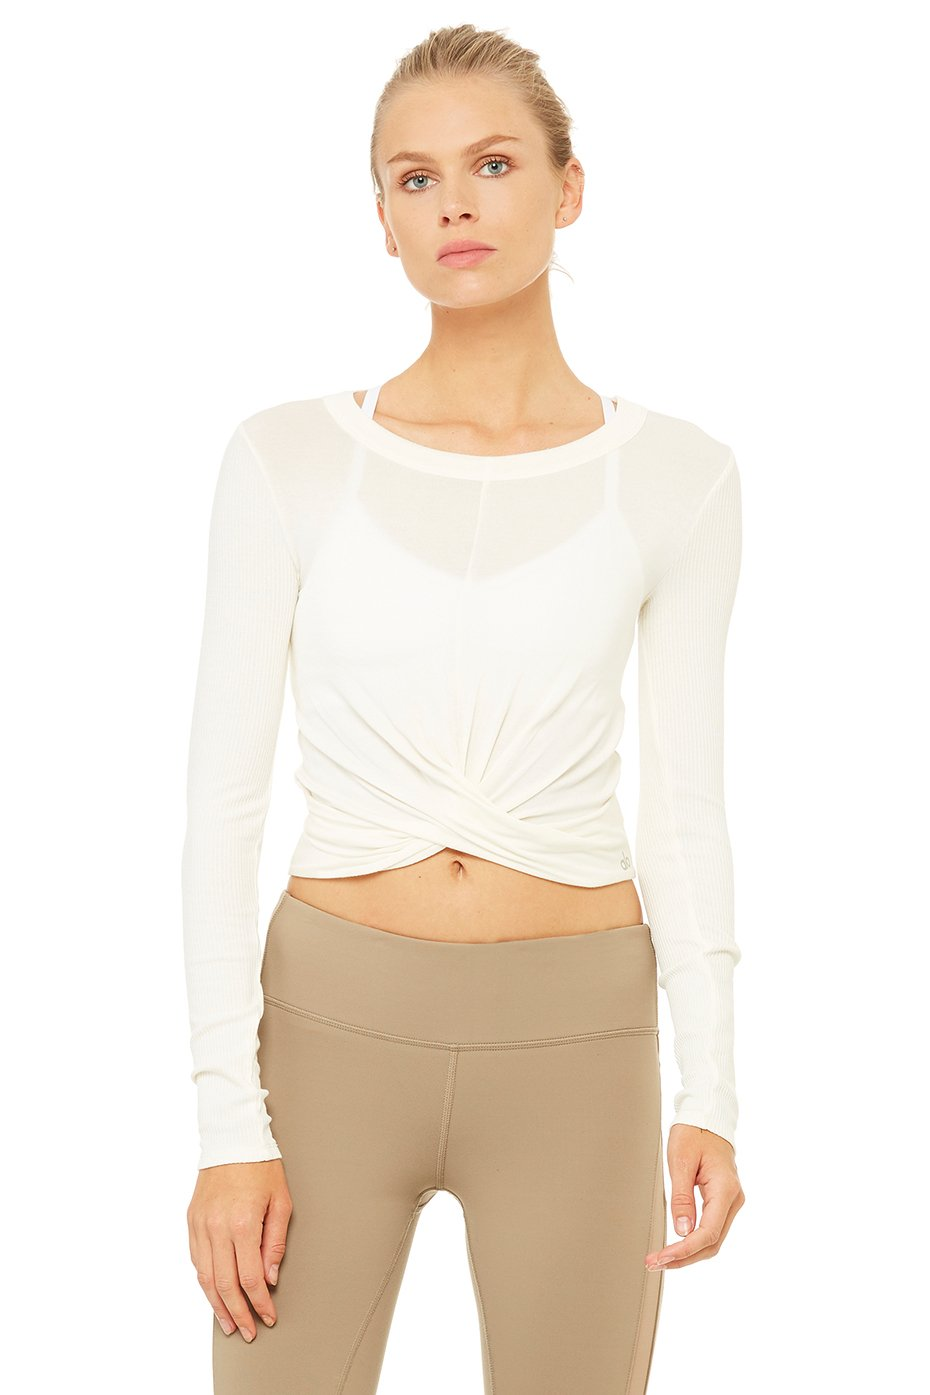 Alo Yoga Cover Long Sleeve Top - Pristine